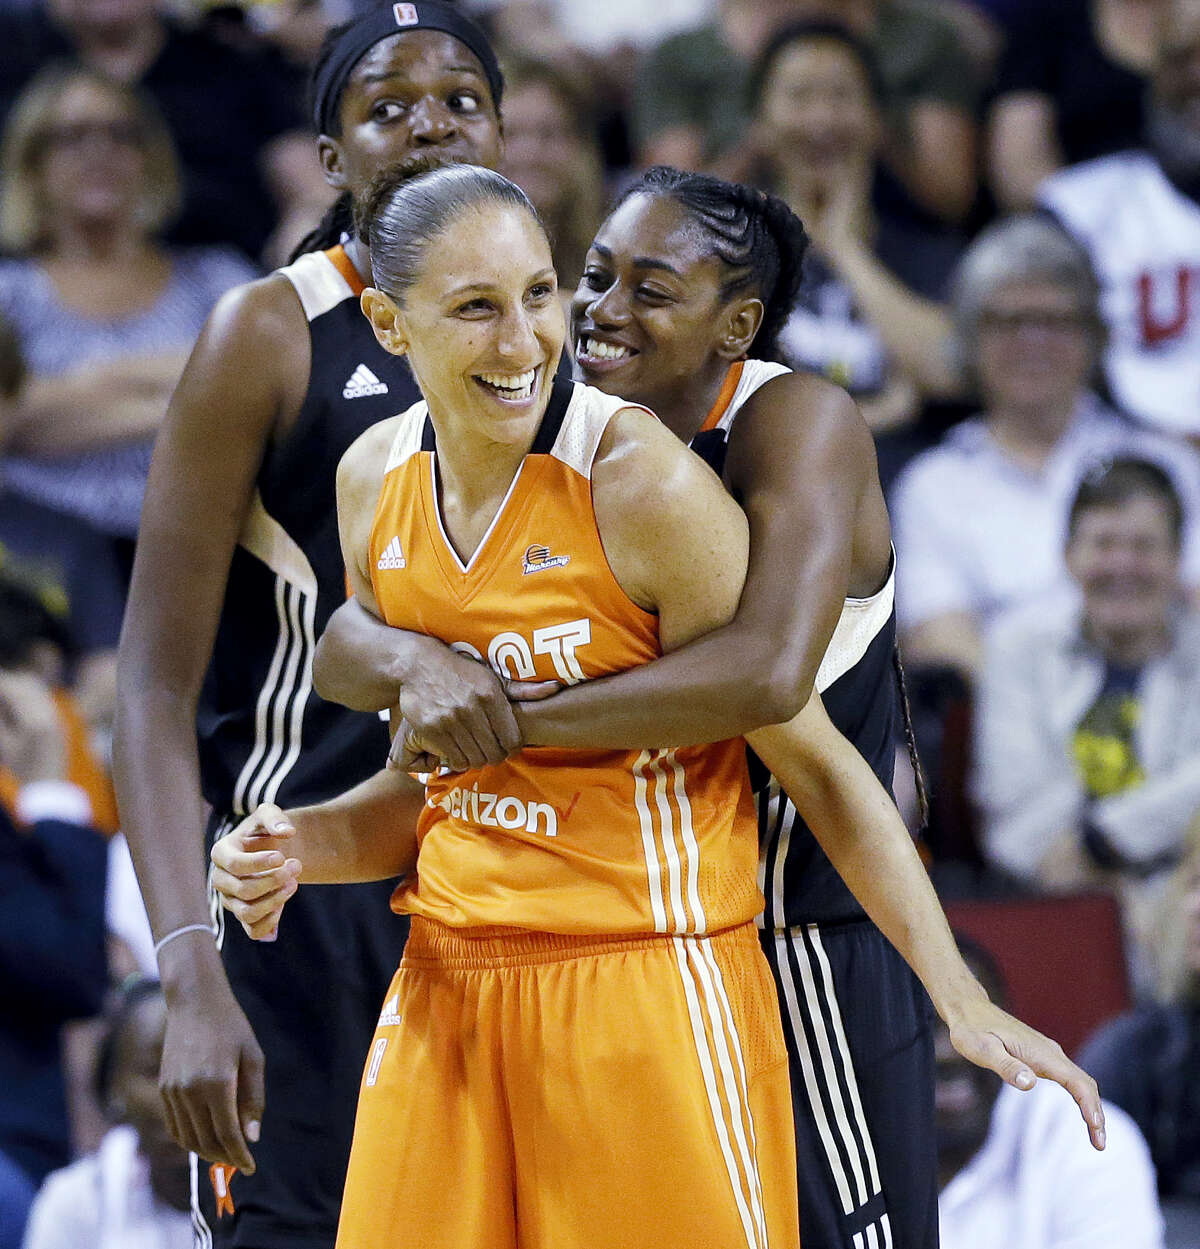 Tiffany Hayes, right, playfully puts a bear hug on Diana Taurasi after a foul by Taurasi during the second half of the WNBA All-Star game on Saturday in Seattle.